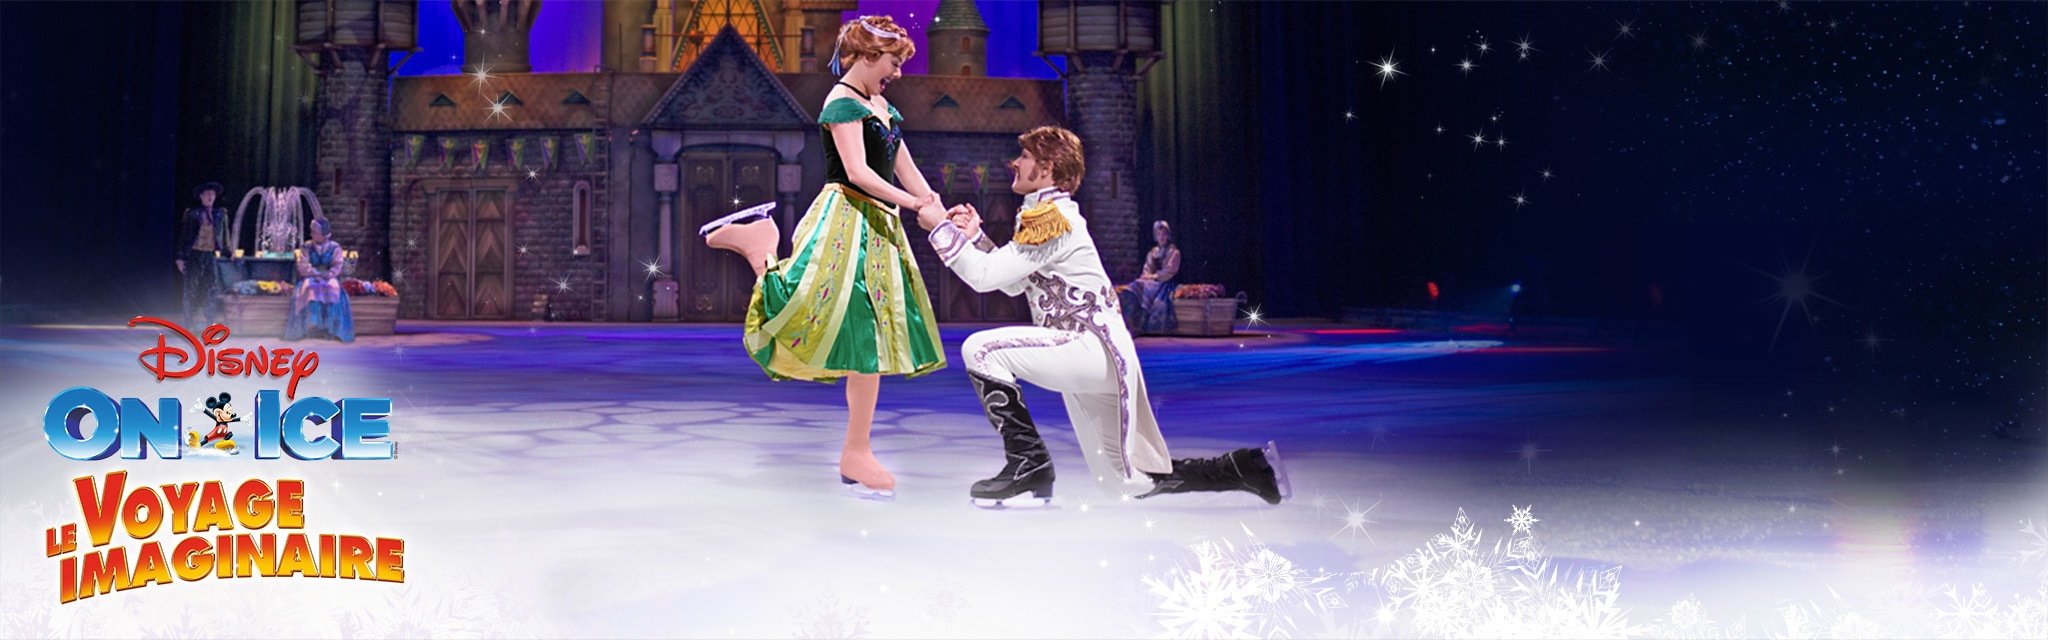 BEFR Homepage - Disney On Ice - Ana